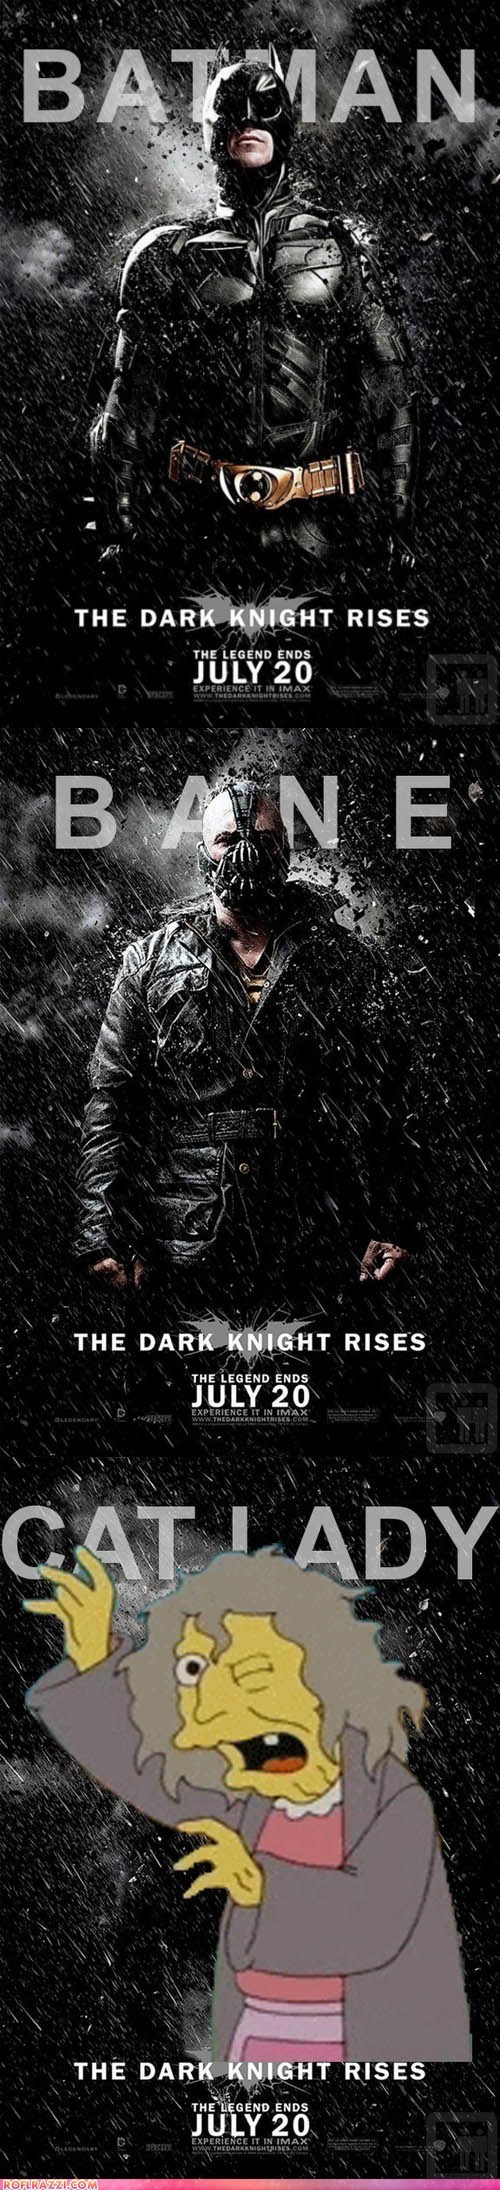 actor,animation,batman,celeb,christian bale,funny,Movie,poster,summer blockbusters,the dark knight rises,the simpsons,tom hardy,TV